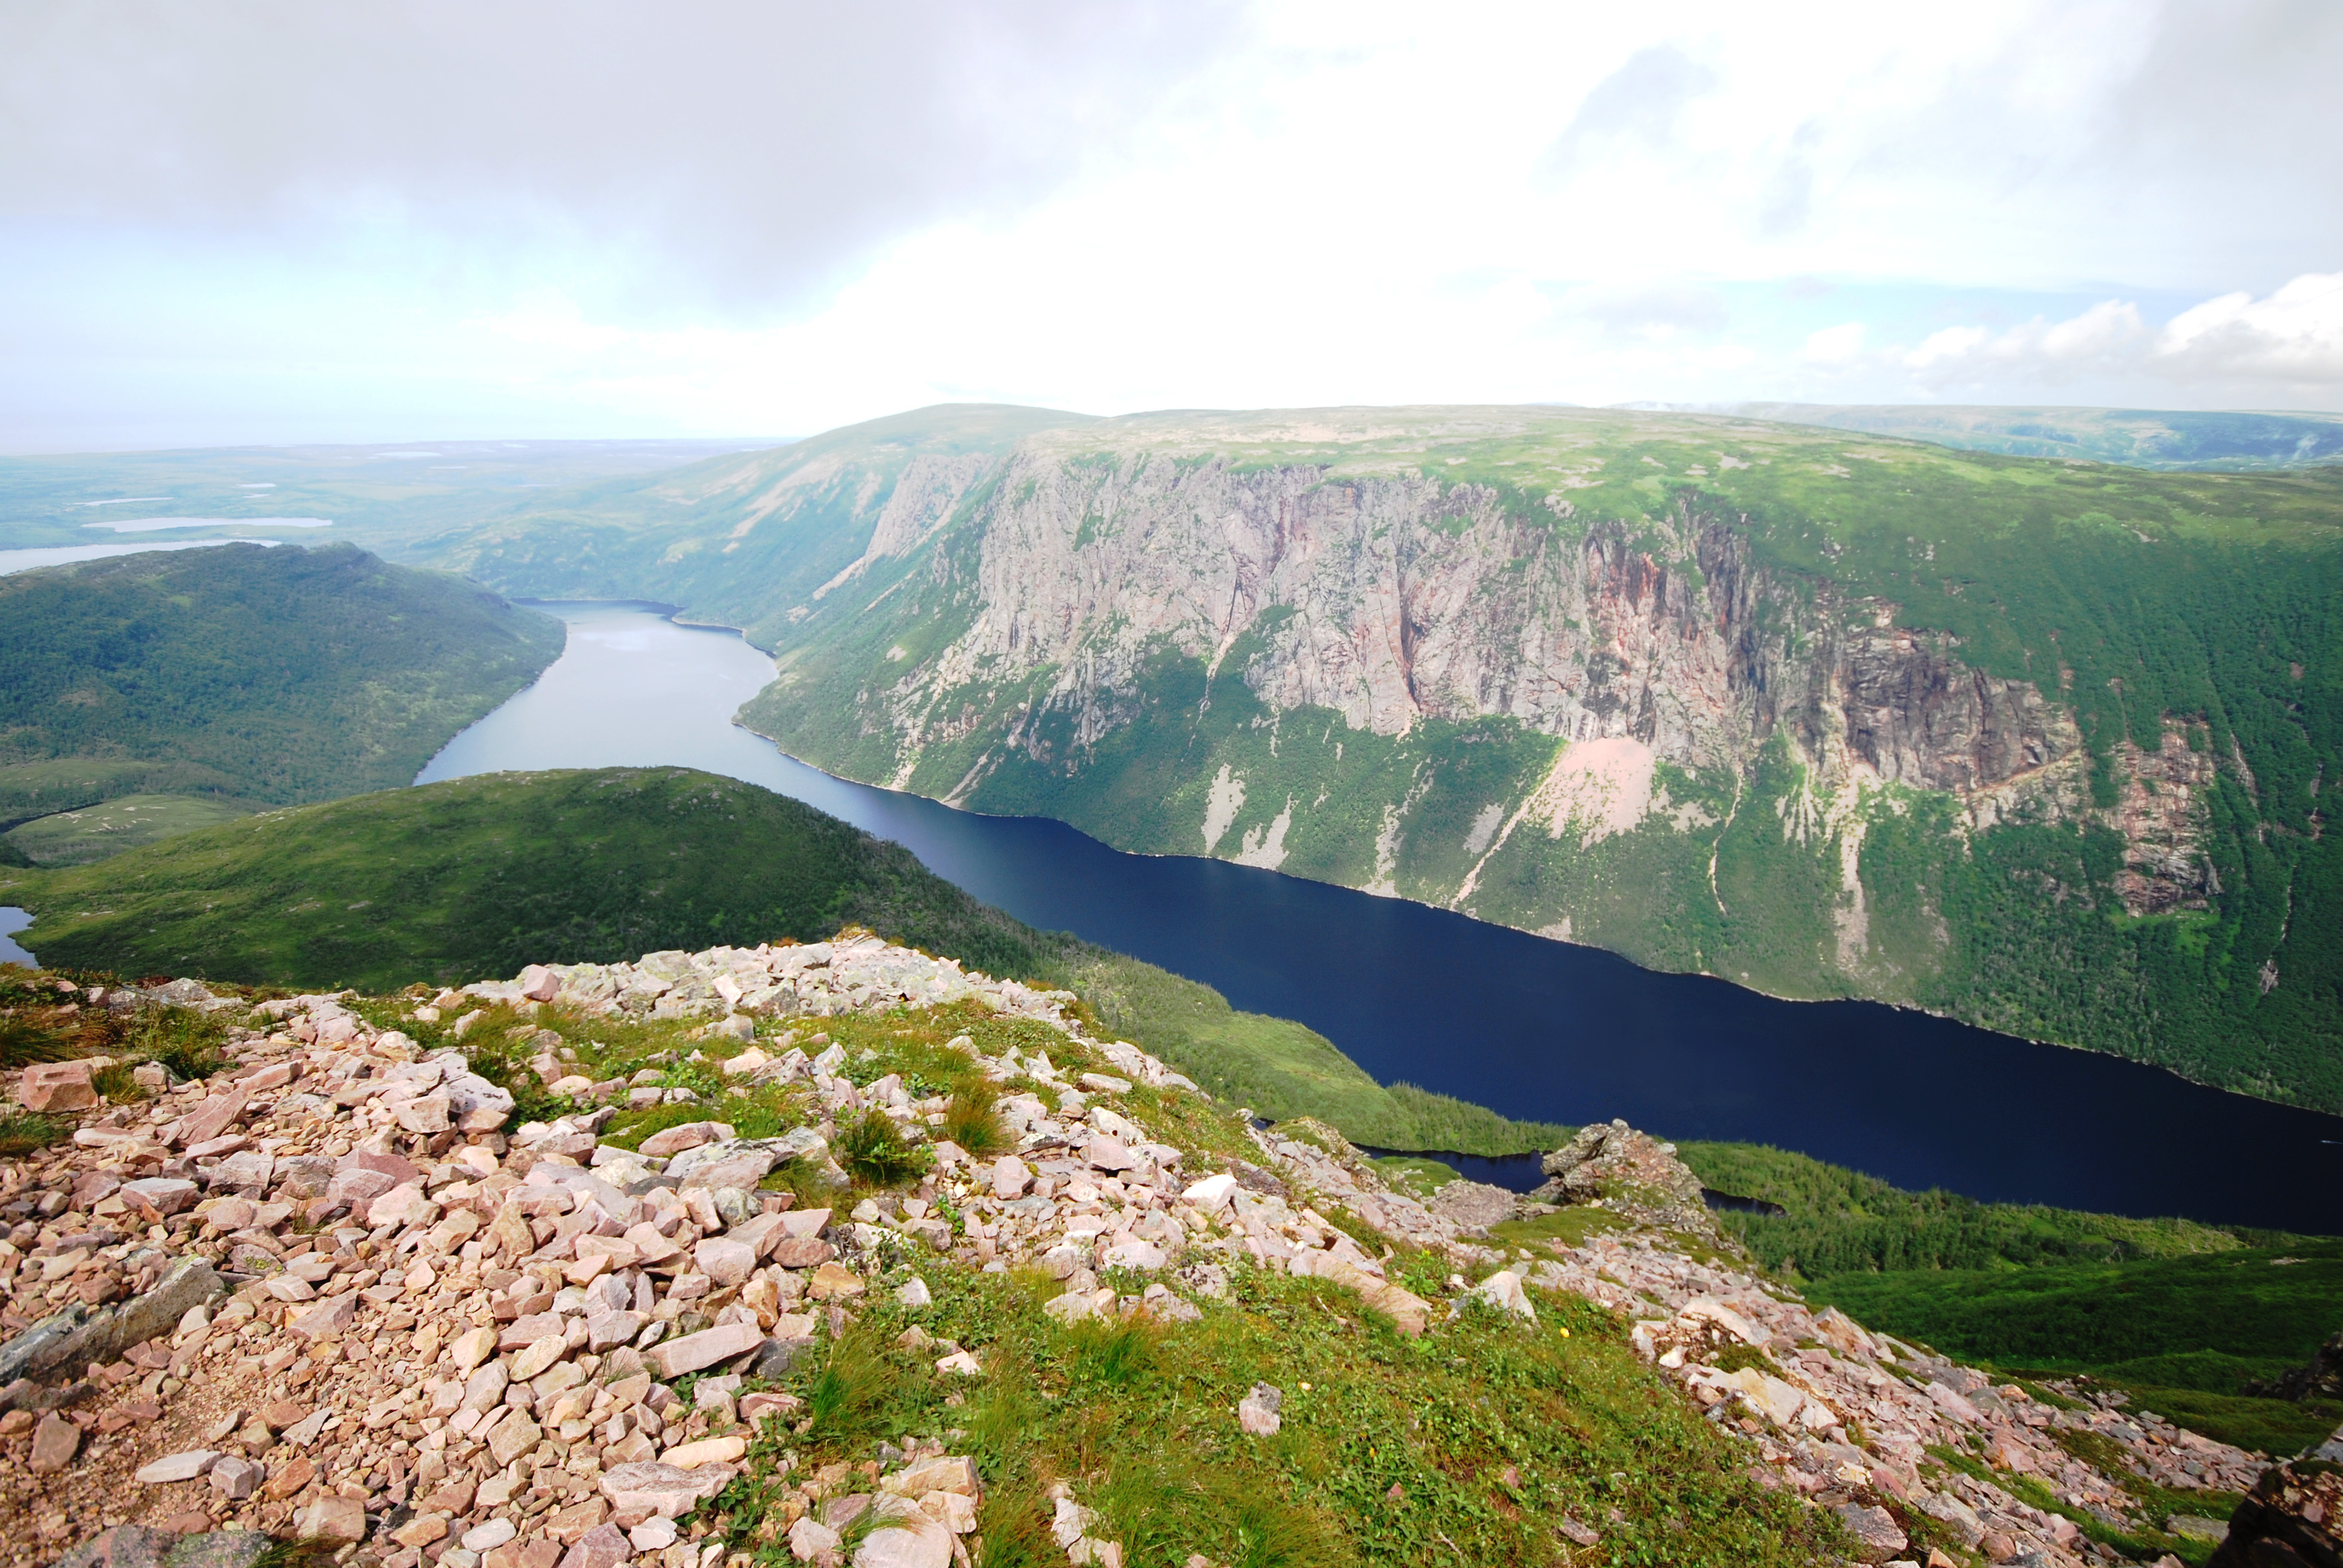 Gros Morne National Park is a Newfoundland treasure. Try a boat ride along the fjord-like channels or hike the mountains for stupendous views. PARKS CANADA PHOTO